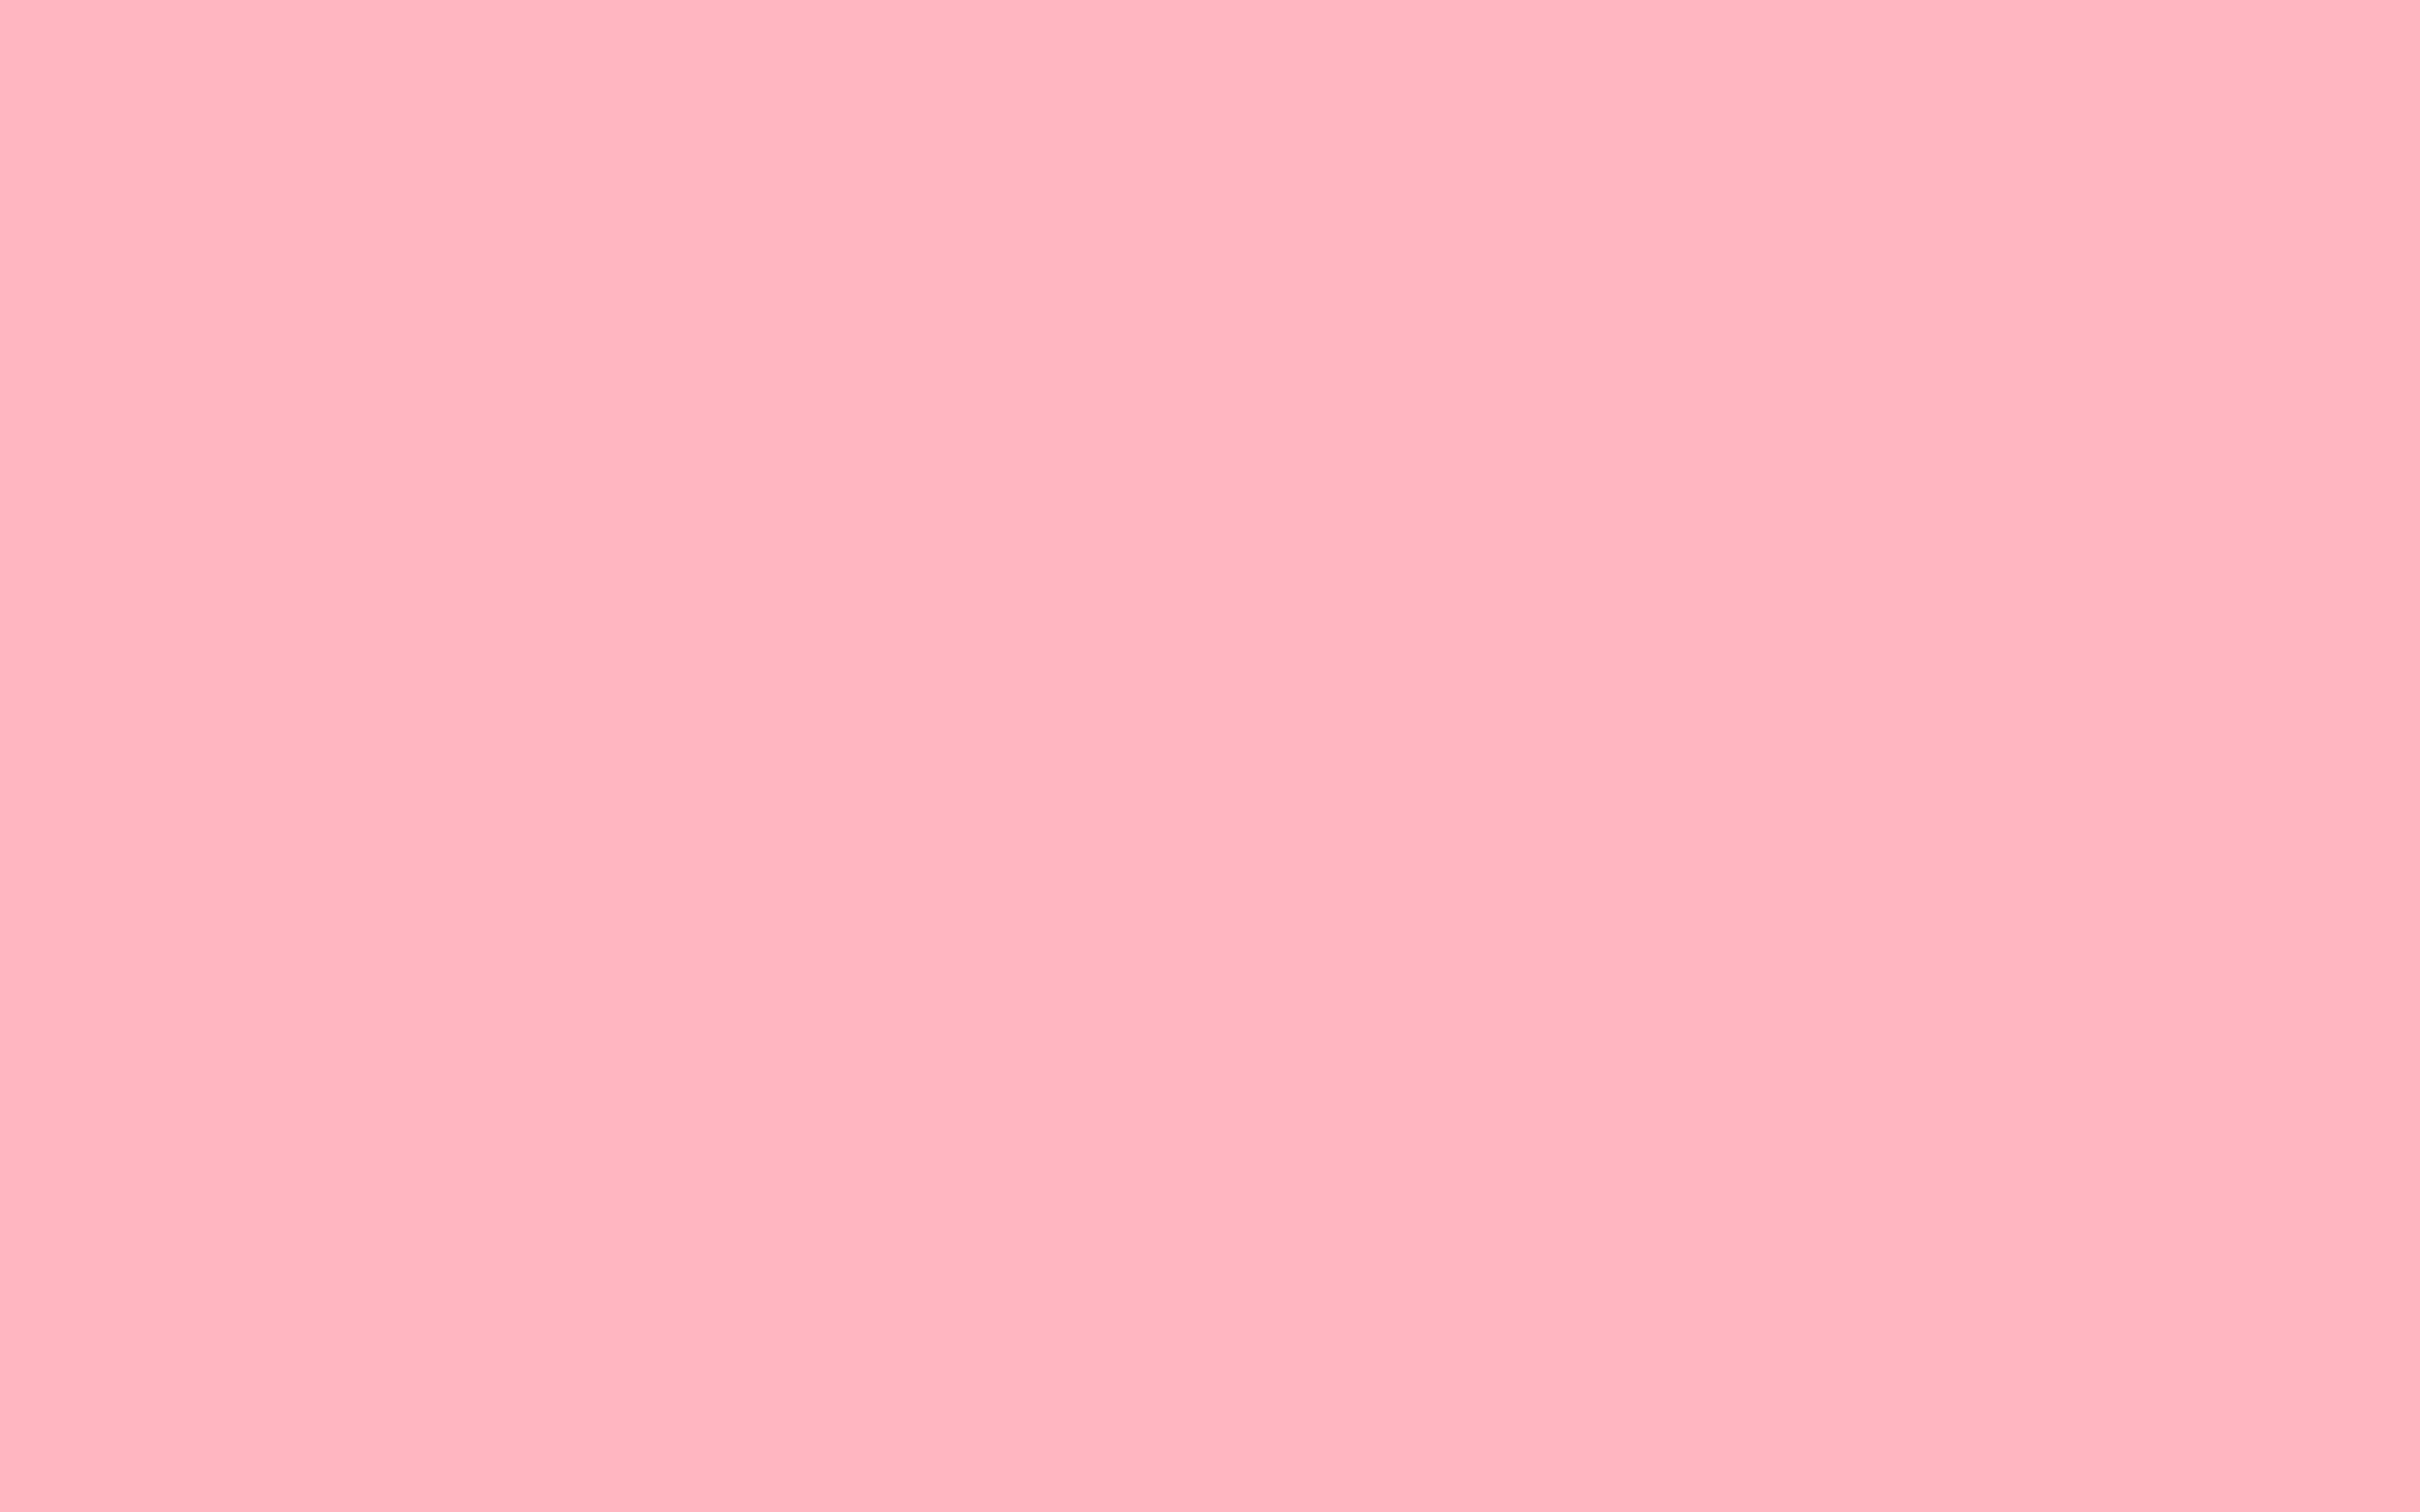 background color solid pink light images 2880x1800 2880x1800